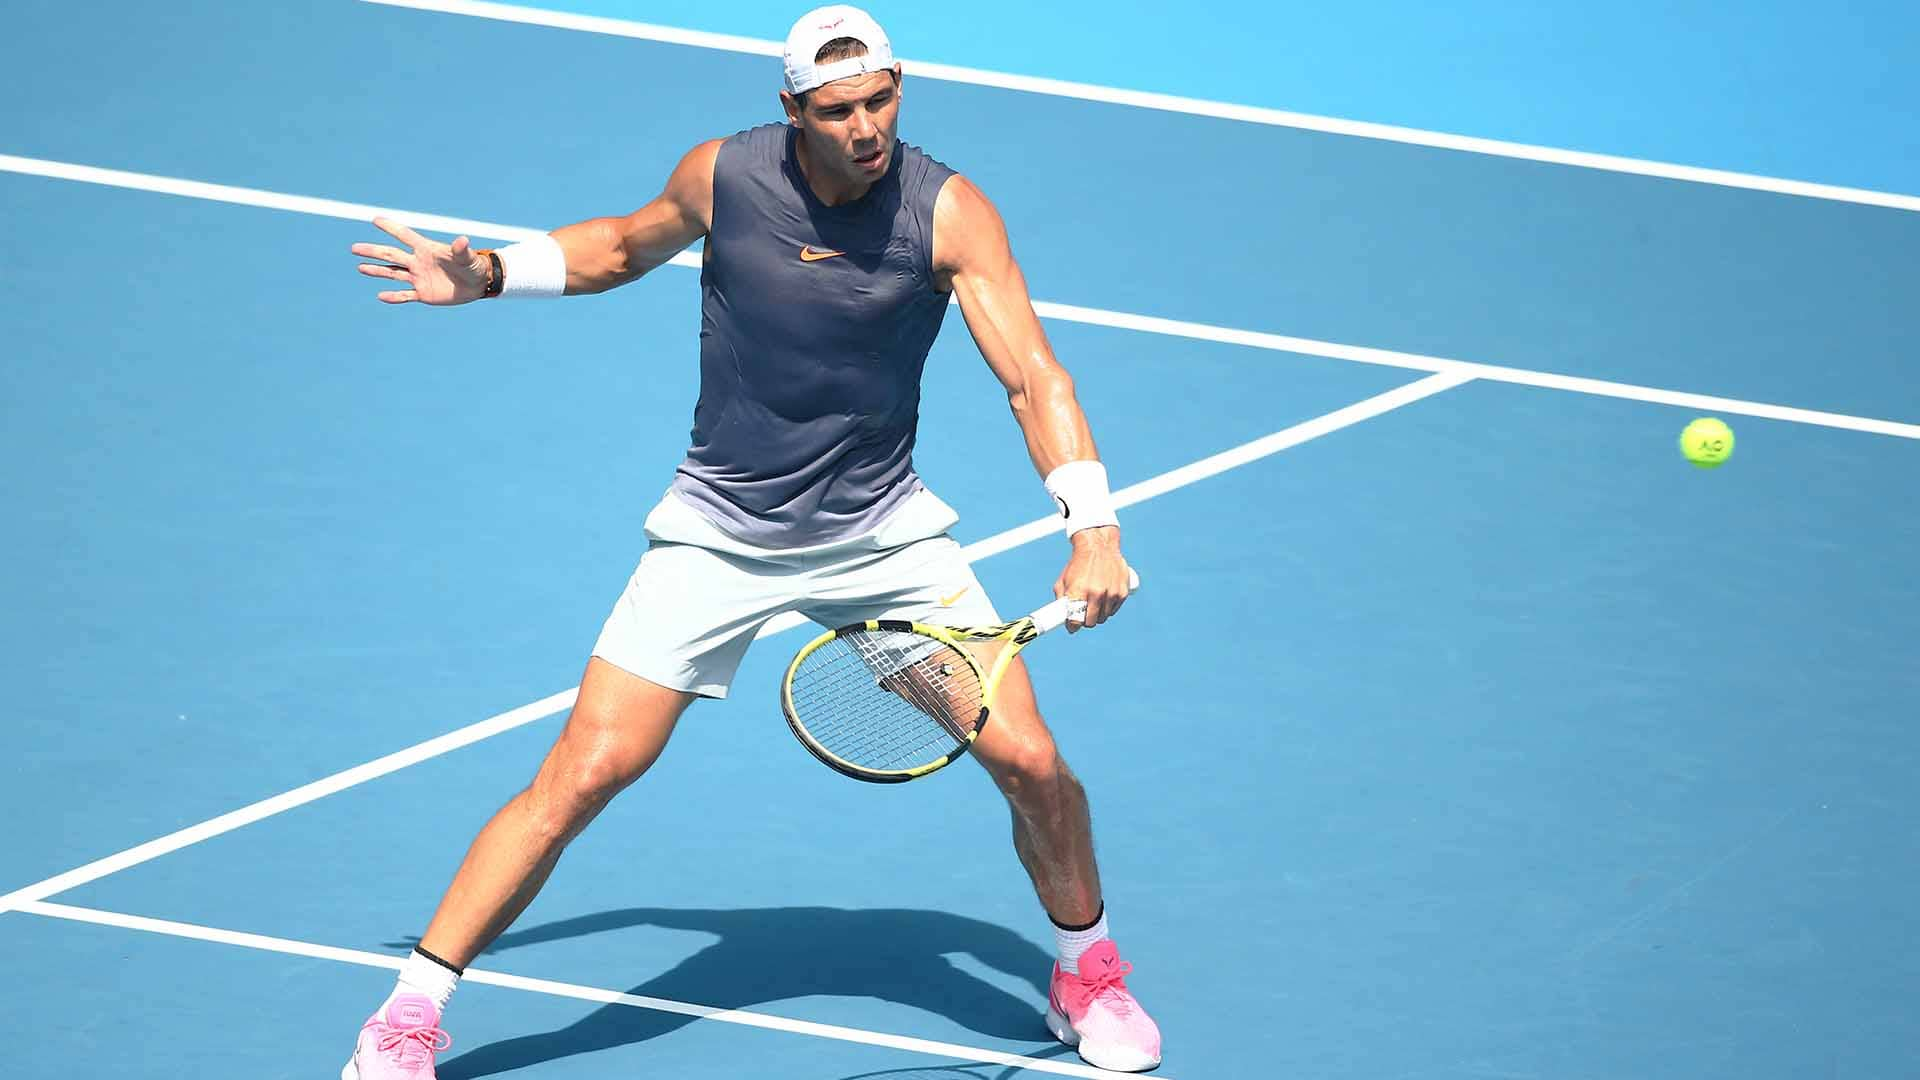 <a href='https://www.atptour.com/en/players/rafael-nadal/n409/overview'>Rafael Nadal</a> has reached five <a href='https://www.atptour.com/en/tournaments/australian-open/580/overview'>Australian Open</a> finals.